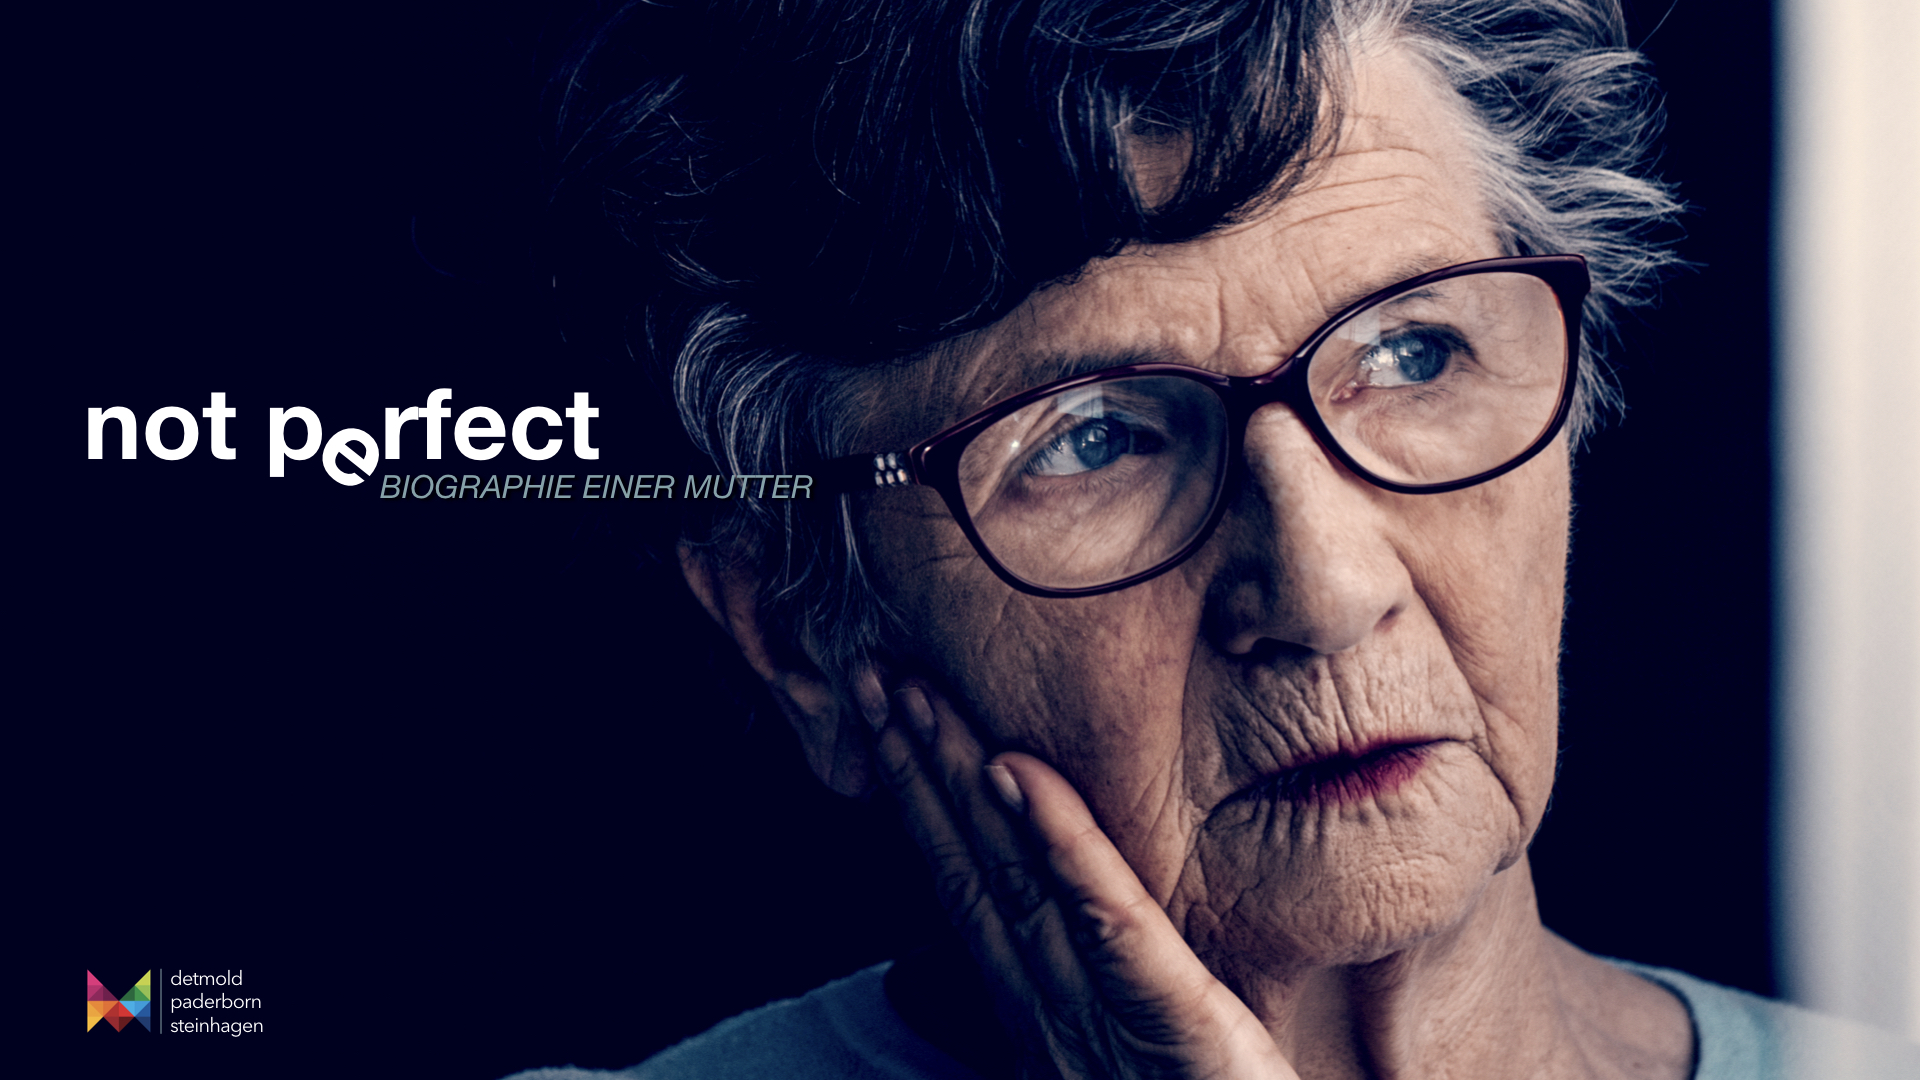 Not Perfect – Biografie einer Mutter